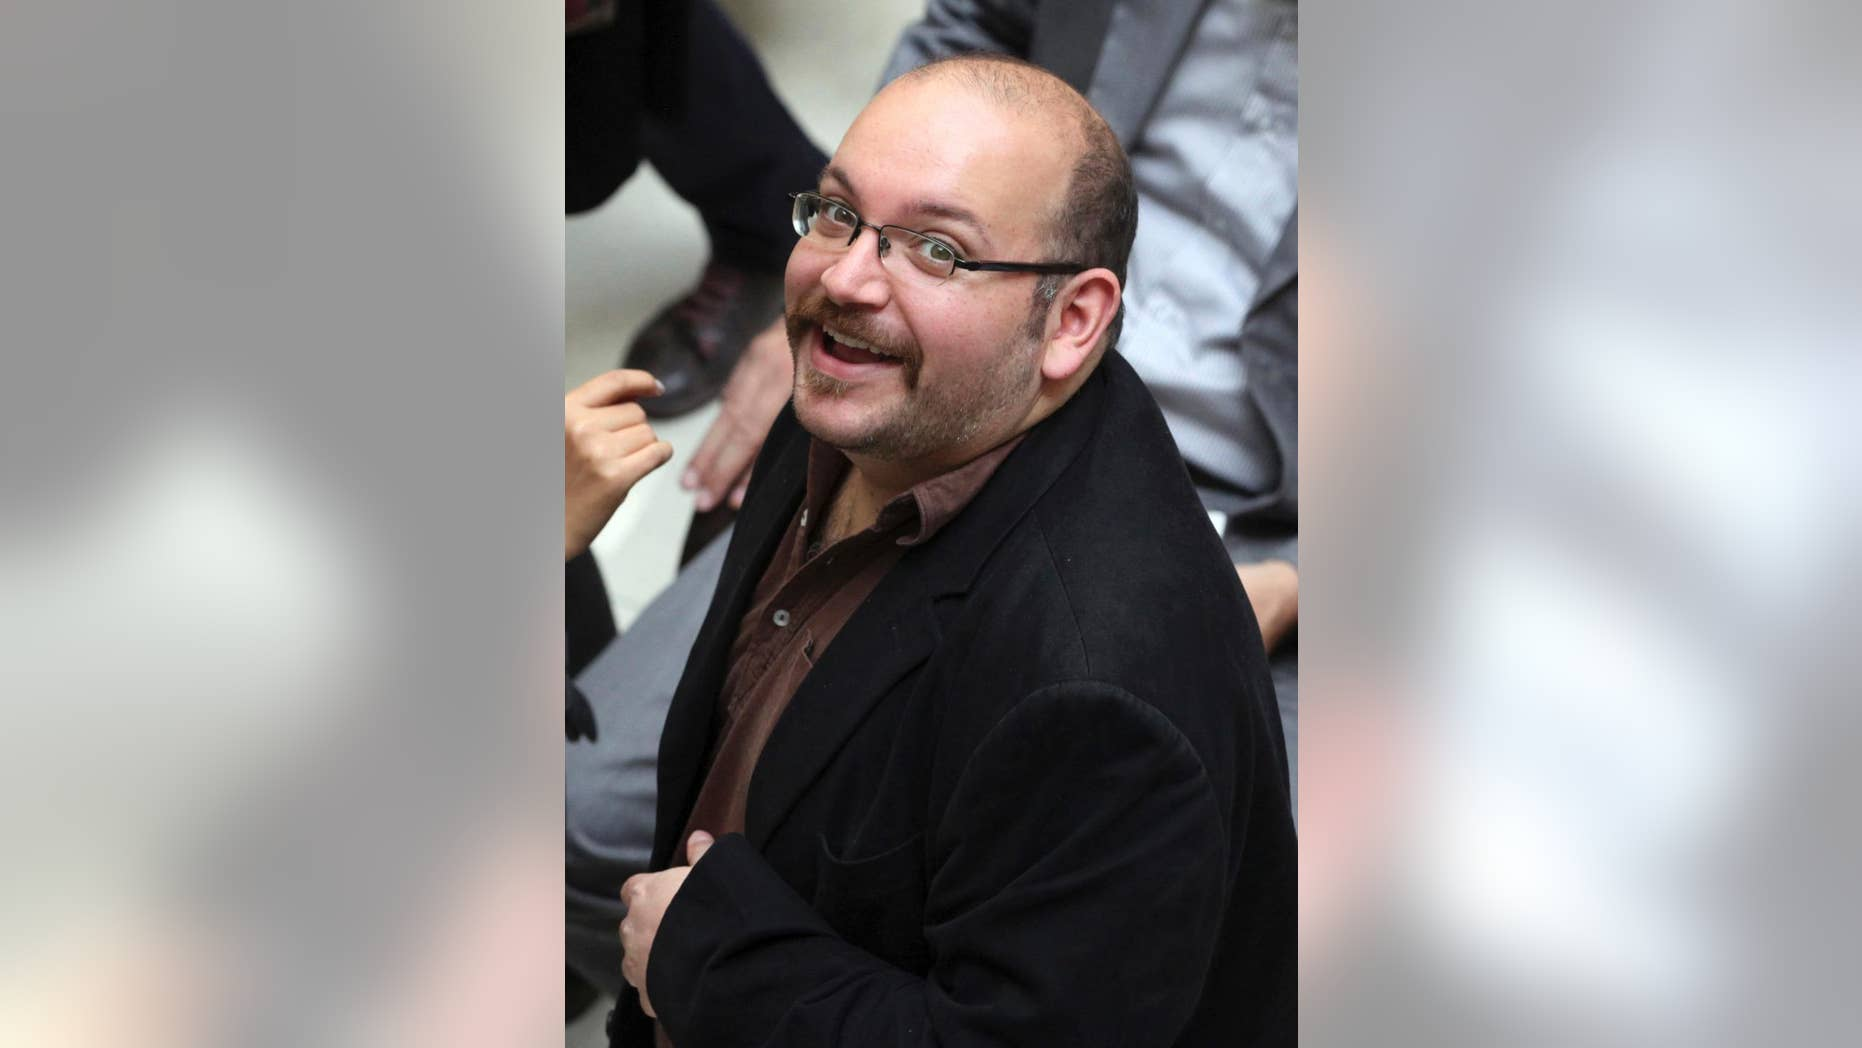 FILE - In this April 11, 2013 file photo, Jason Rezaian, an Iranian-American correspondent for the Washington Post smiles as he attends a presidential campaign of President Hassan Rouhani in Tehran, Iran.  The trial of a Washington Post reporter detained in Iran for nearly 10 months will begin next week, a defense lawyer representing the Iranian-American journalist said Tuesday, May 19, 2015.  (AP Photo/Vahid Salemi, File)